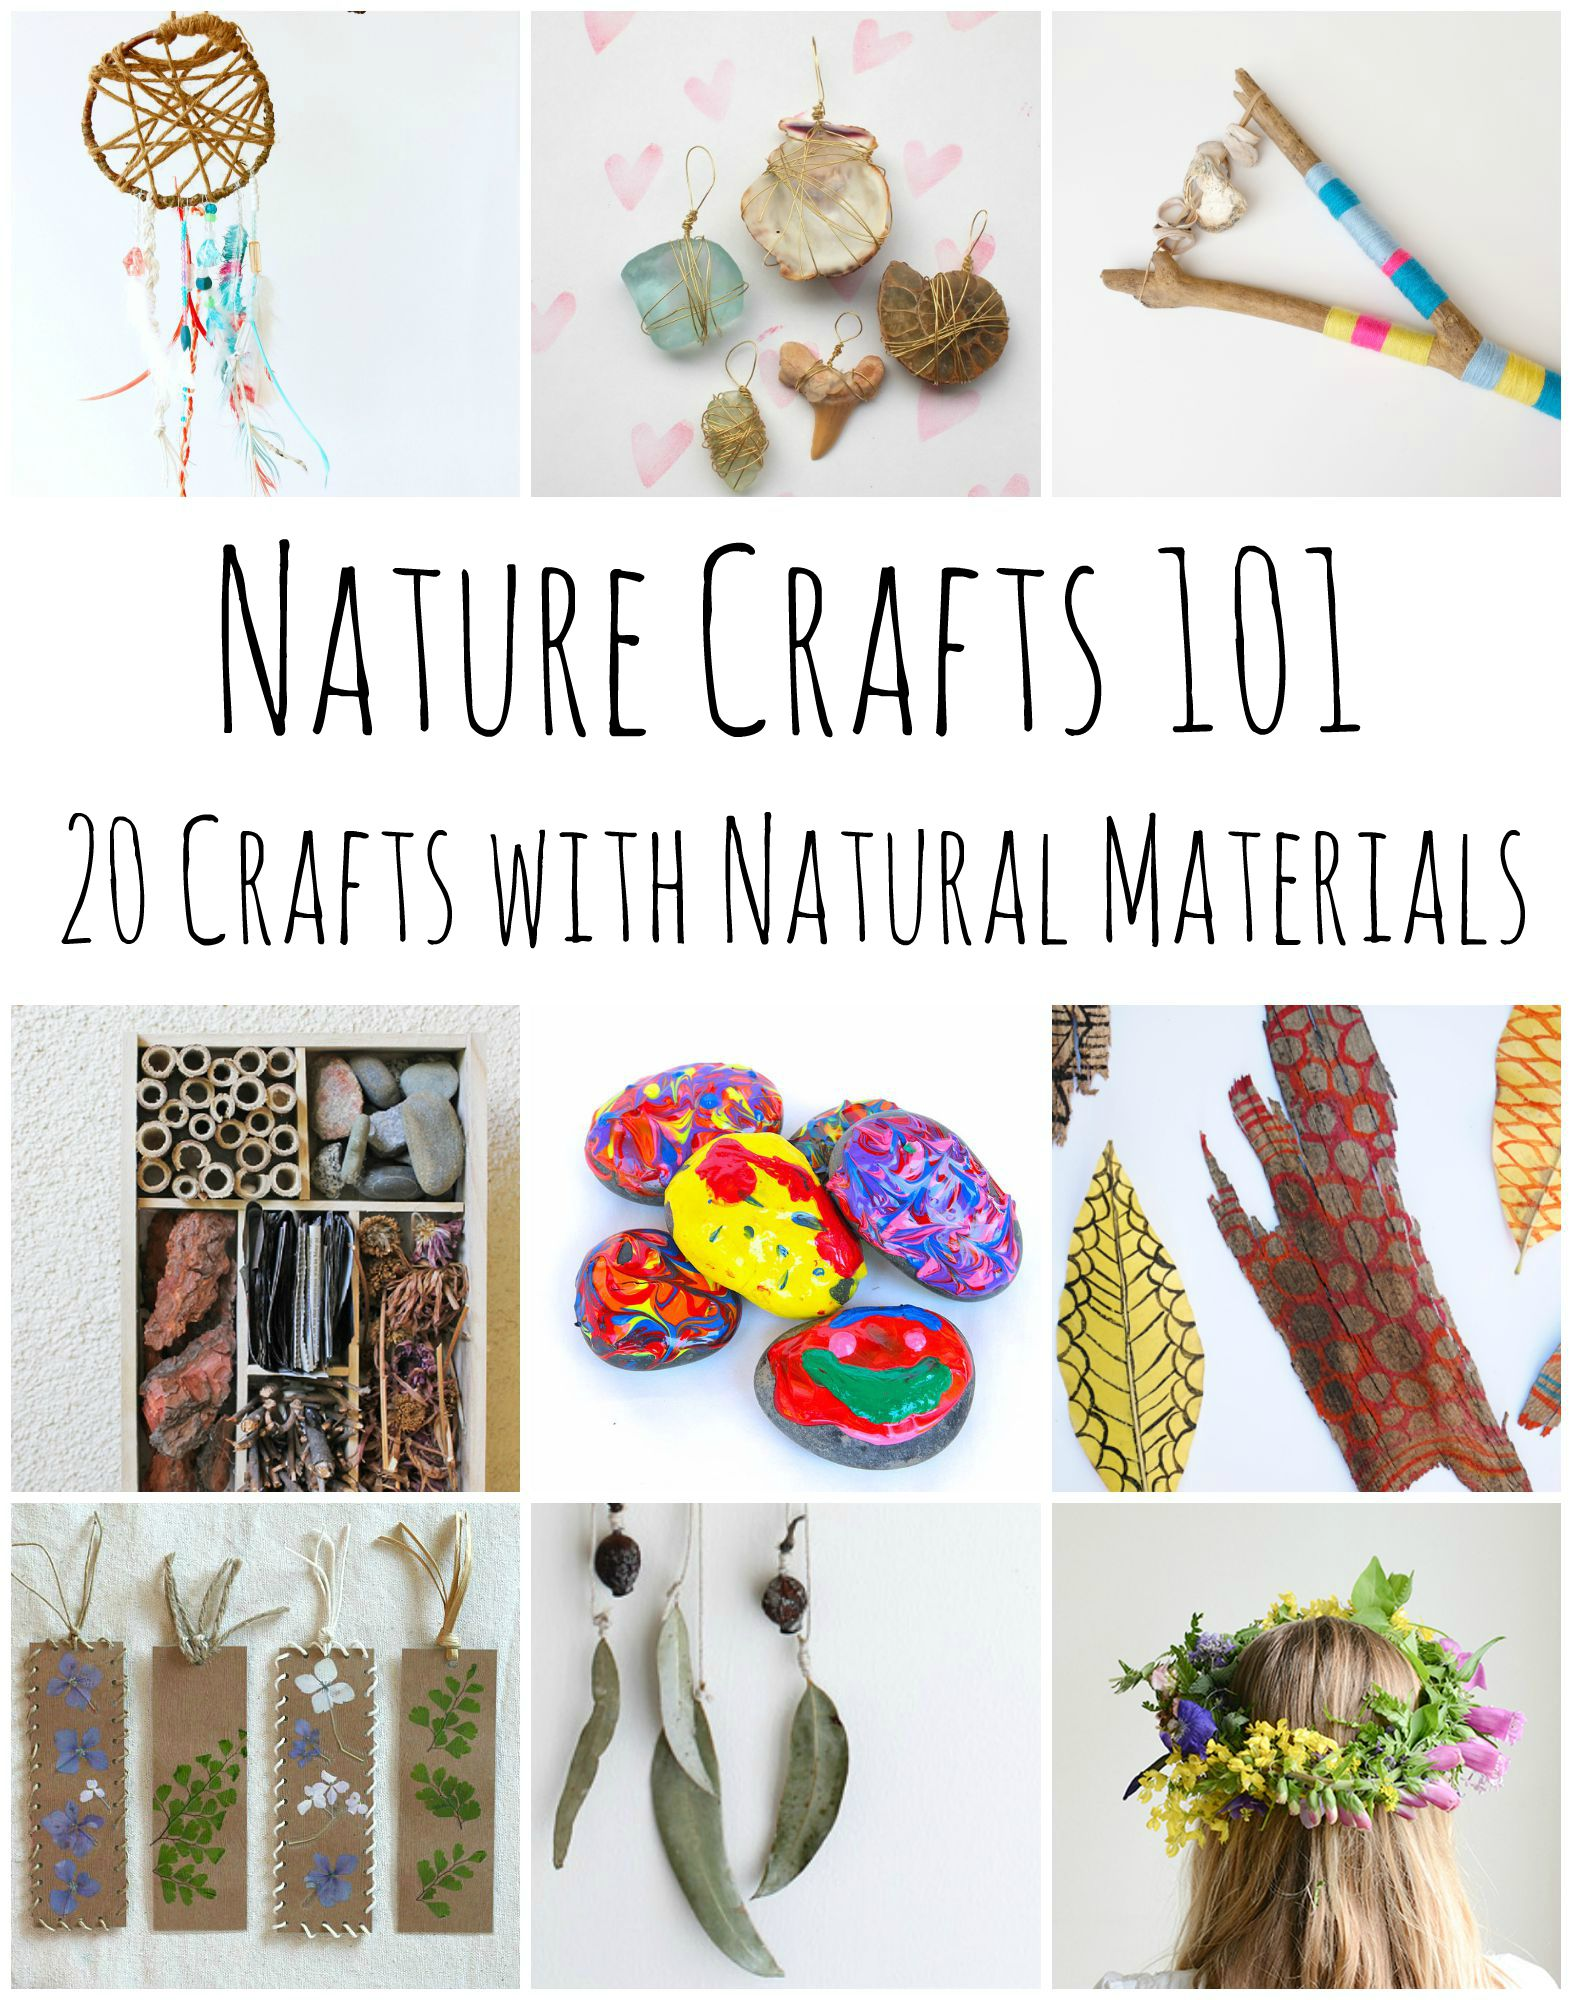 101 handmade christmas ornament ideas - Nature Crafts 101 20 Stunning Crafts Using Items Found In Nature